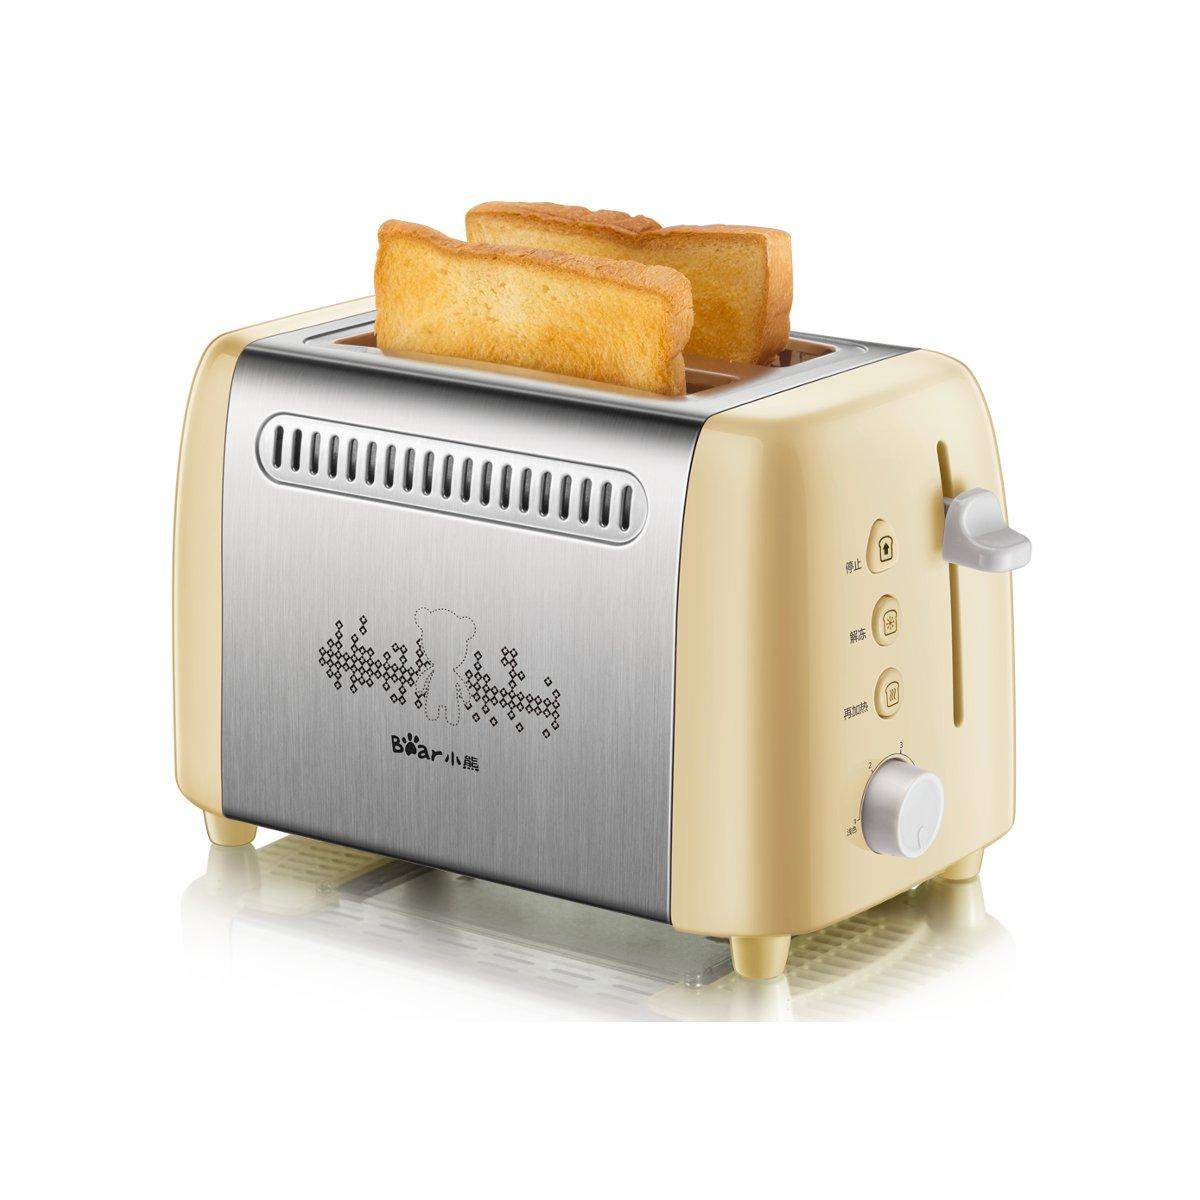 Bear DSL-A02W1 Automatic Household Toaster Two pieces of bread Toaster for Breakfast Bread Maker